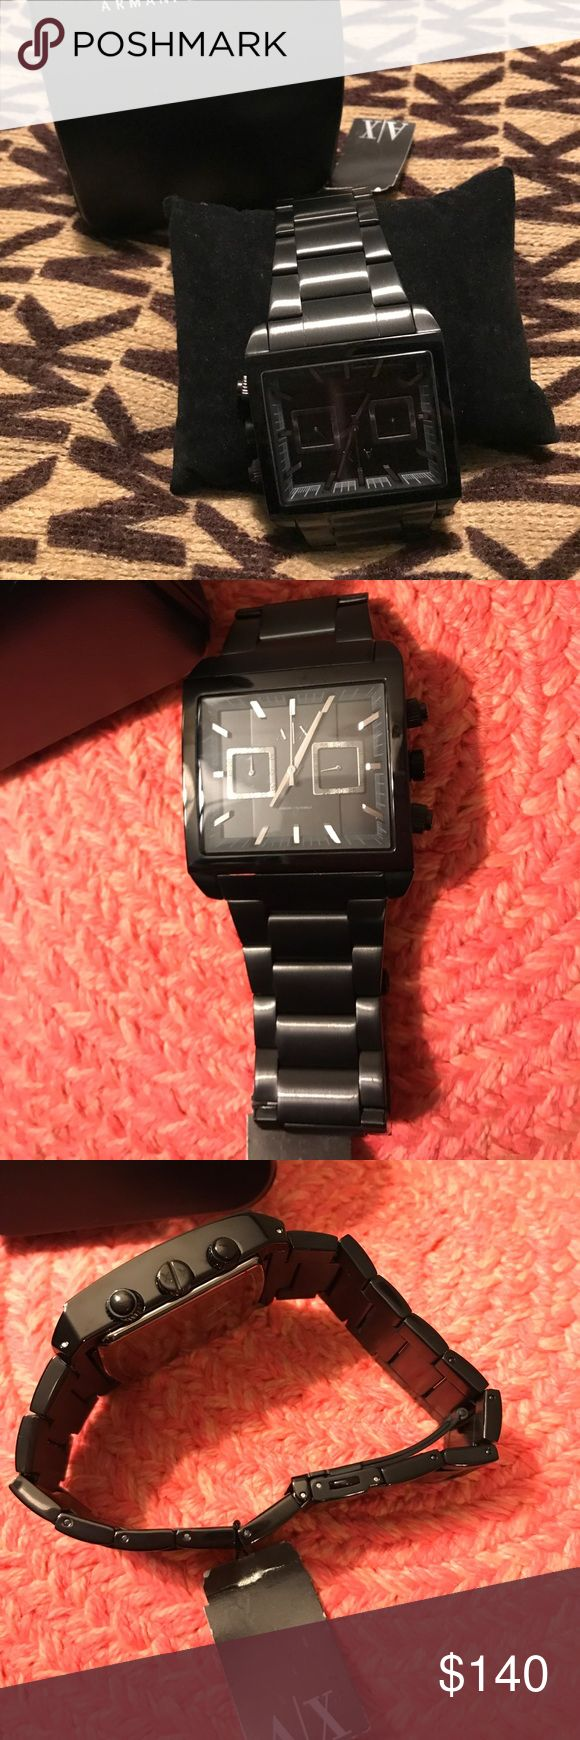 Armani Exchange mens watch New Armani exchange tenno watch, pls see pictures for description Armani Exchange Accessories Watches